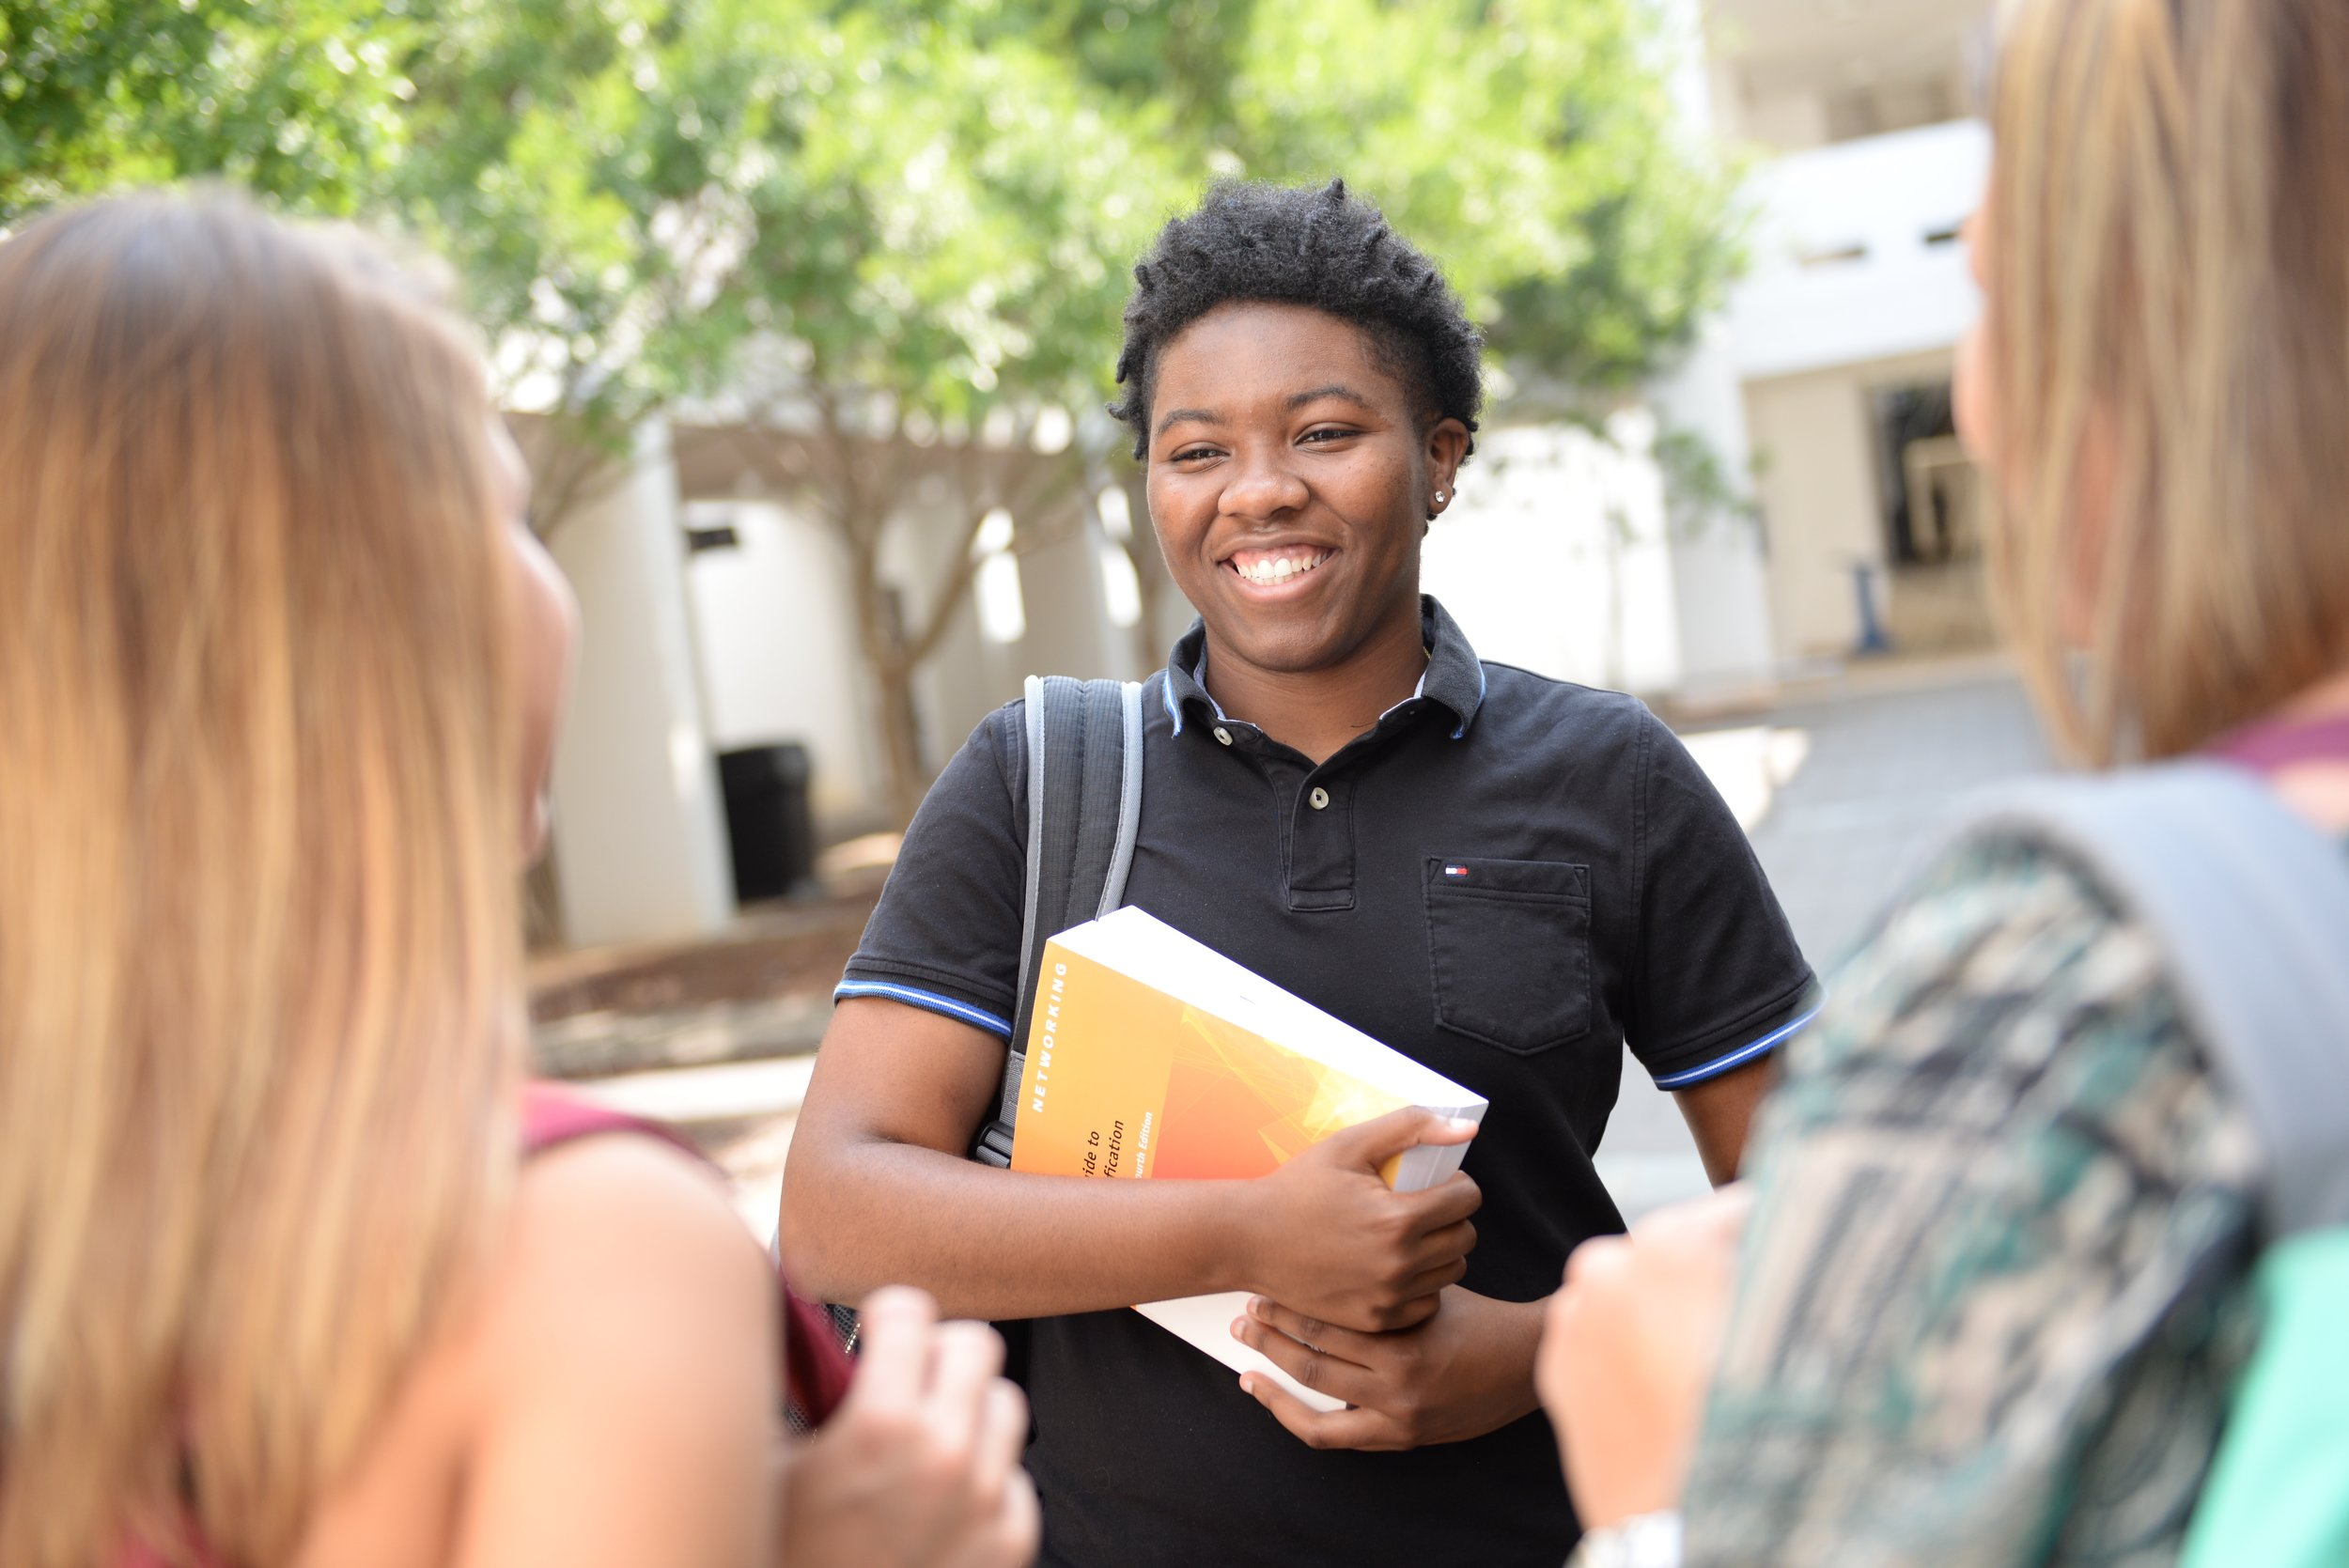 Early Access to Higher Education - For PTC, every option is on the table when it comes to connecting students with the training and education they are looking for. This is especially true for high school students who are seeking early college credit.